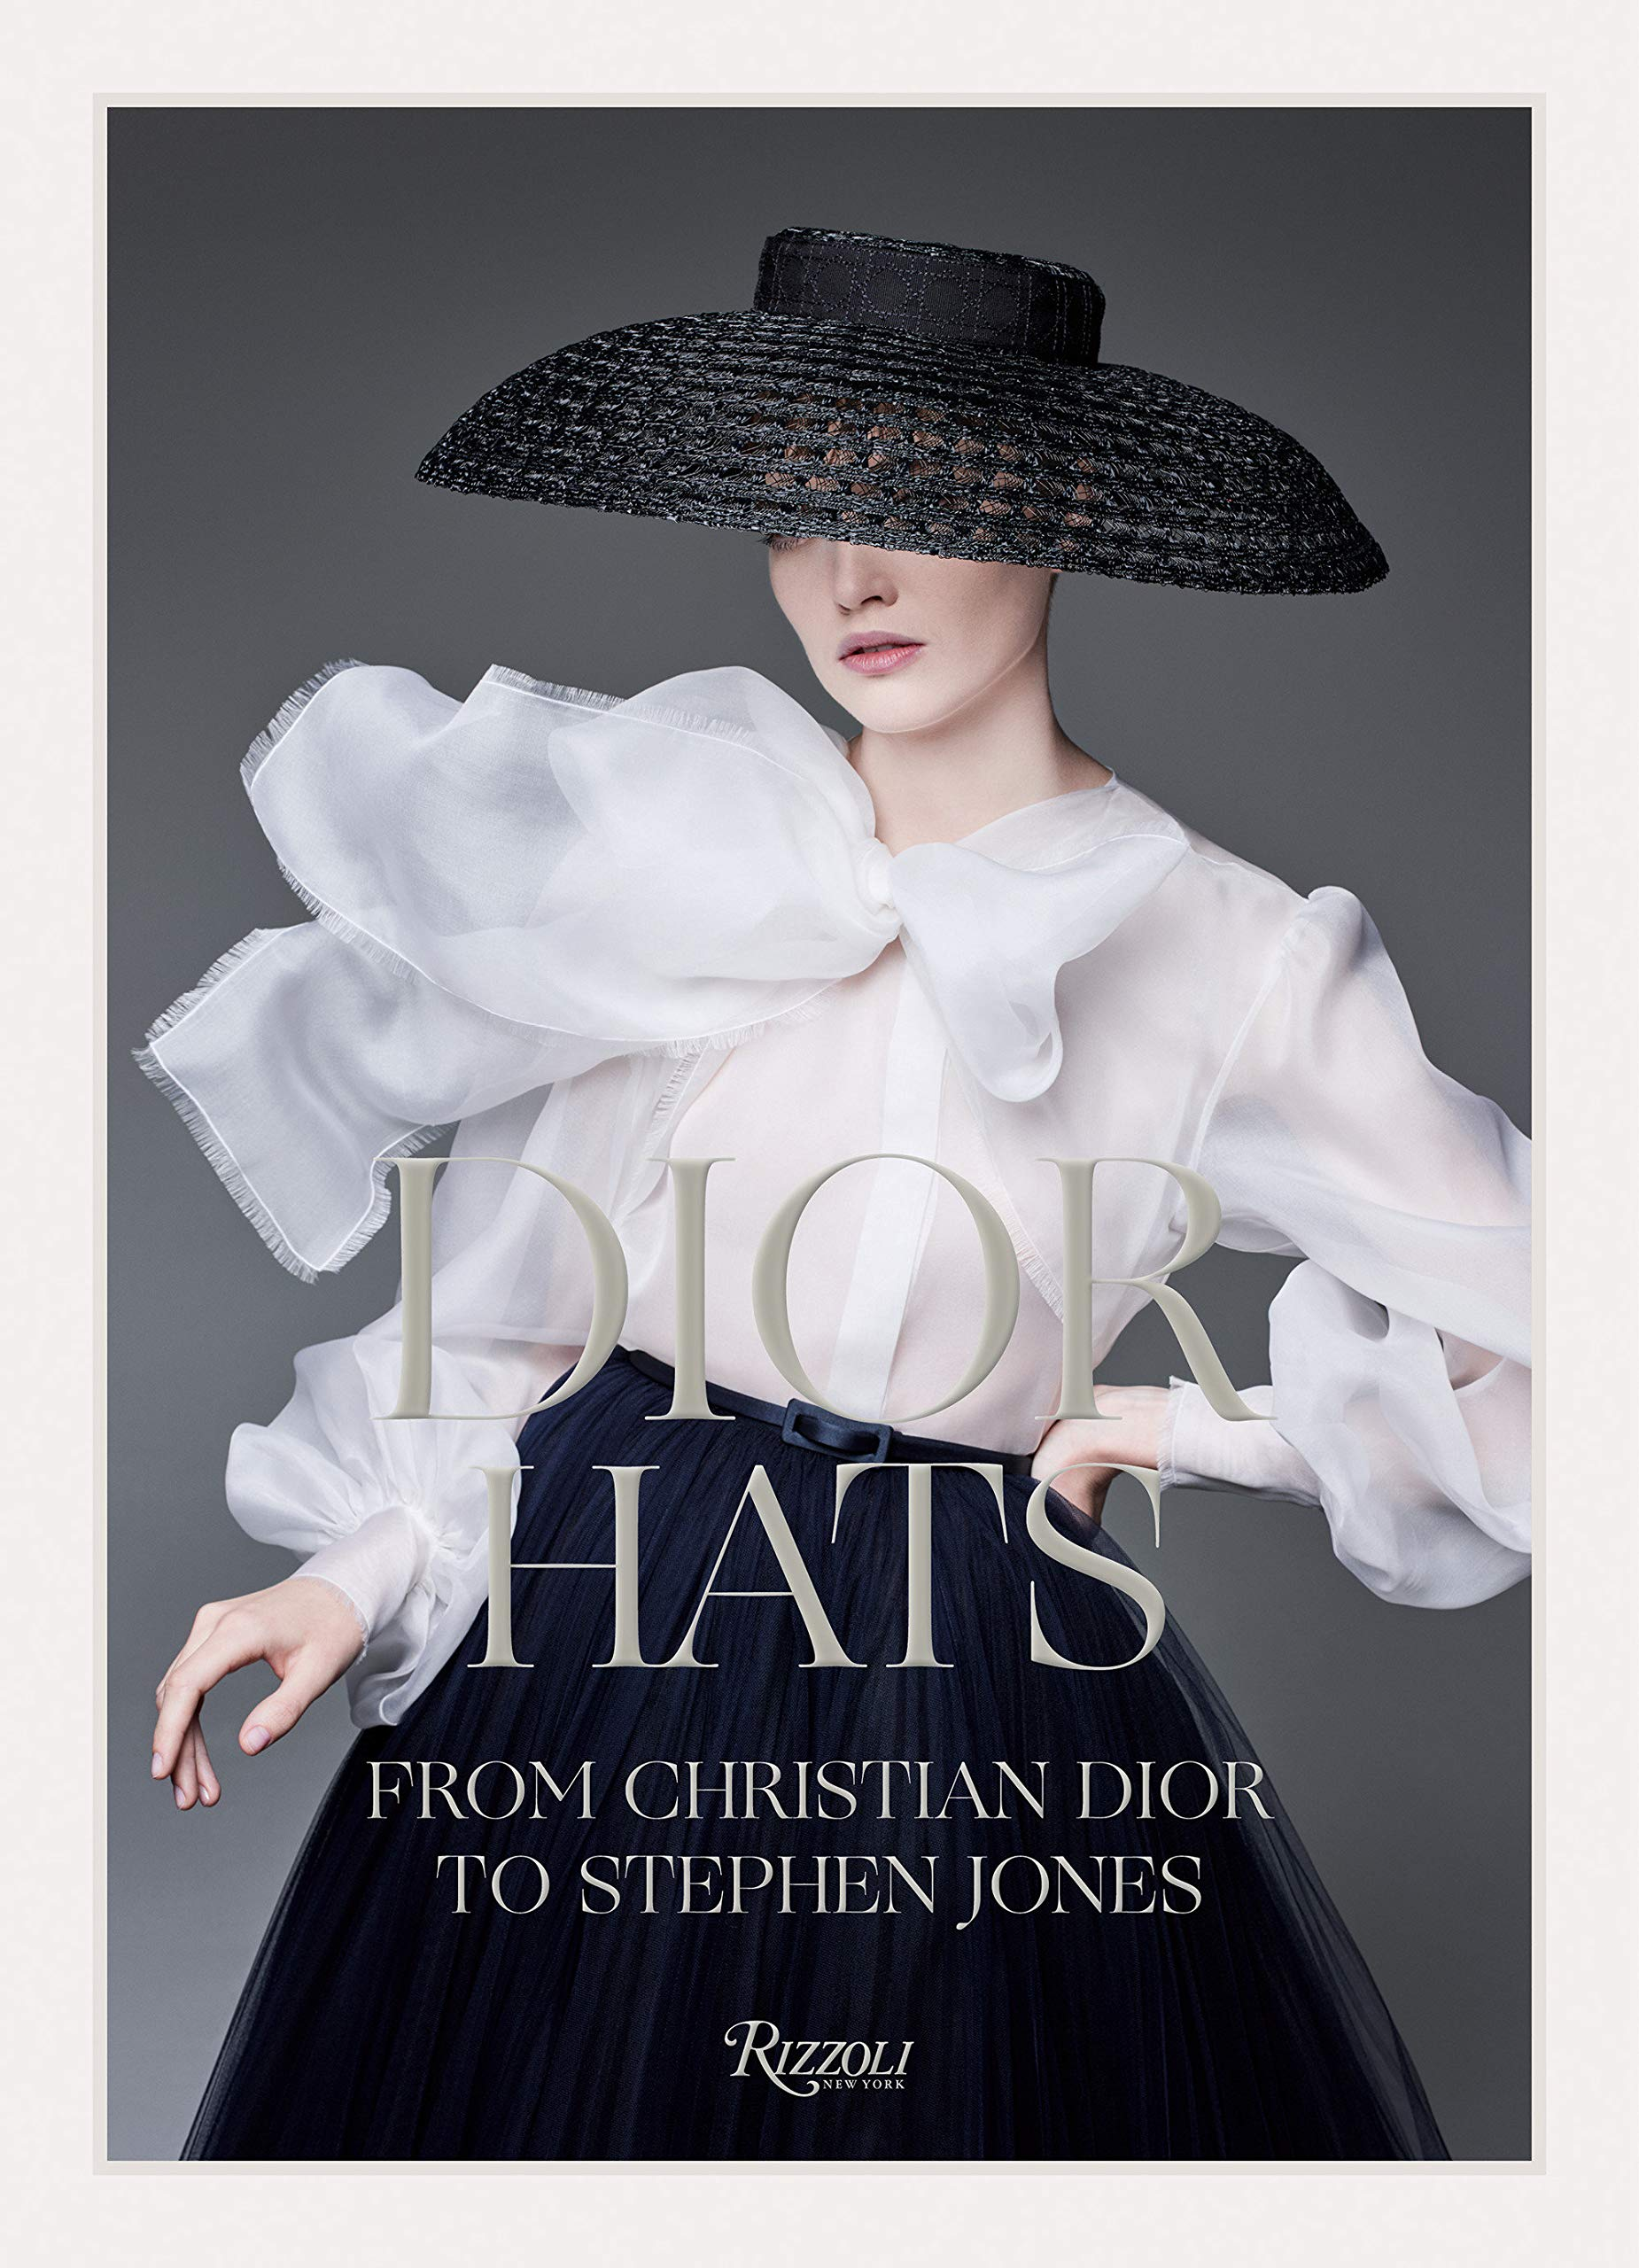 Dior Hats: From Christian Dior to Stephen Jones Book